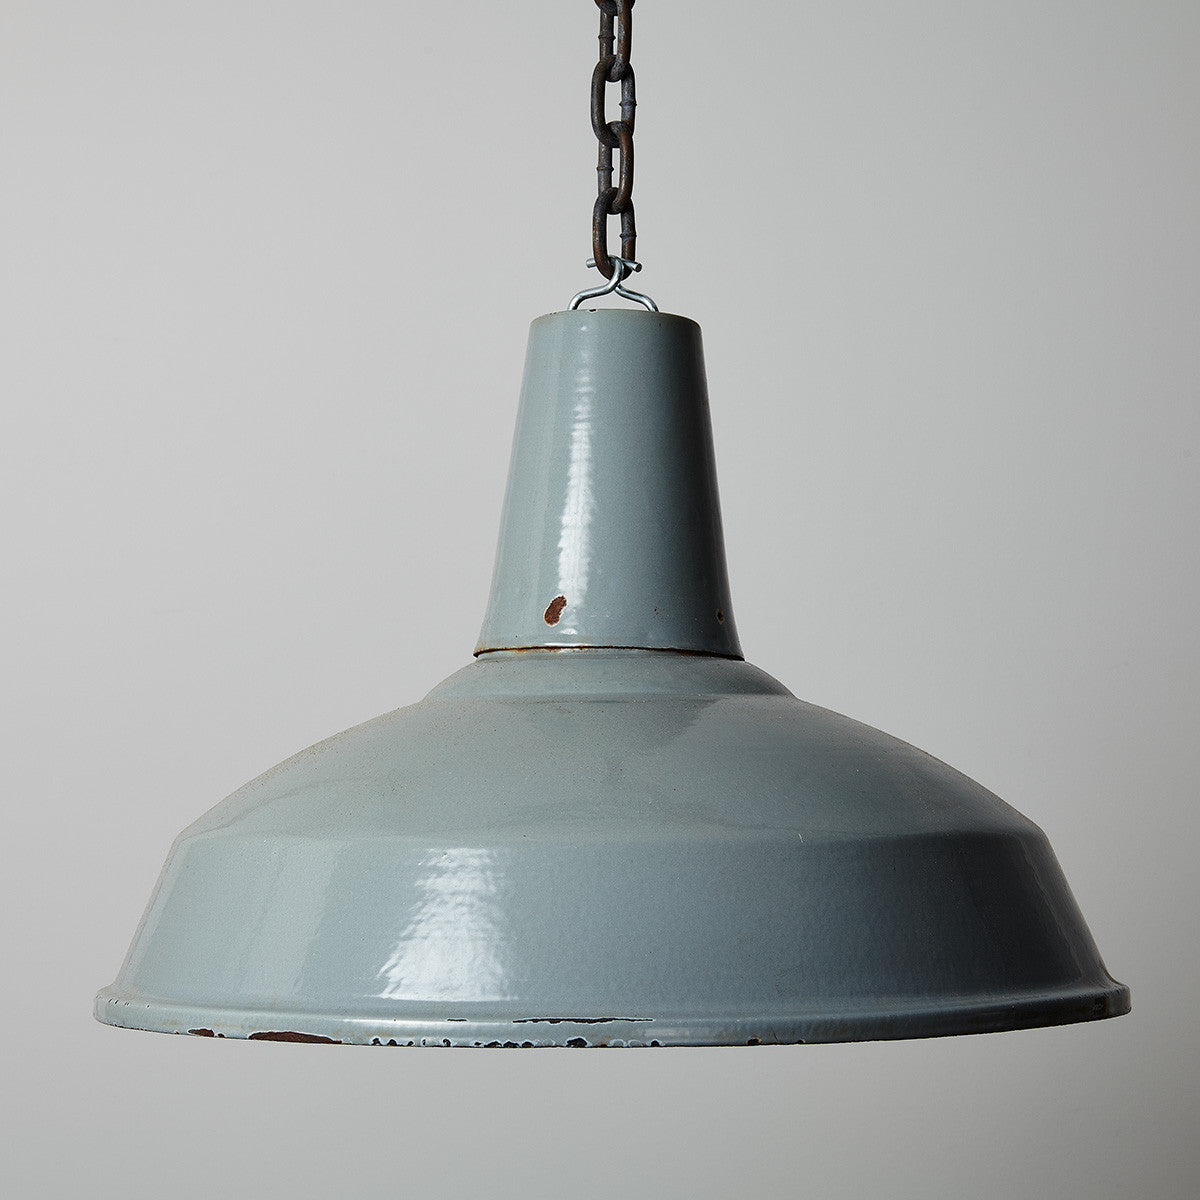 Vintage Grey Steel Enamel Pendant Warehouse Light- 50cm